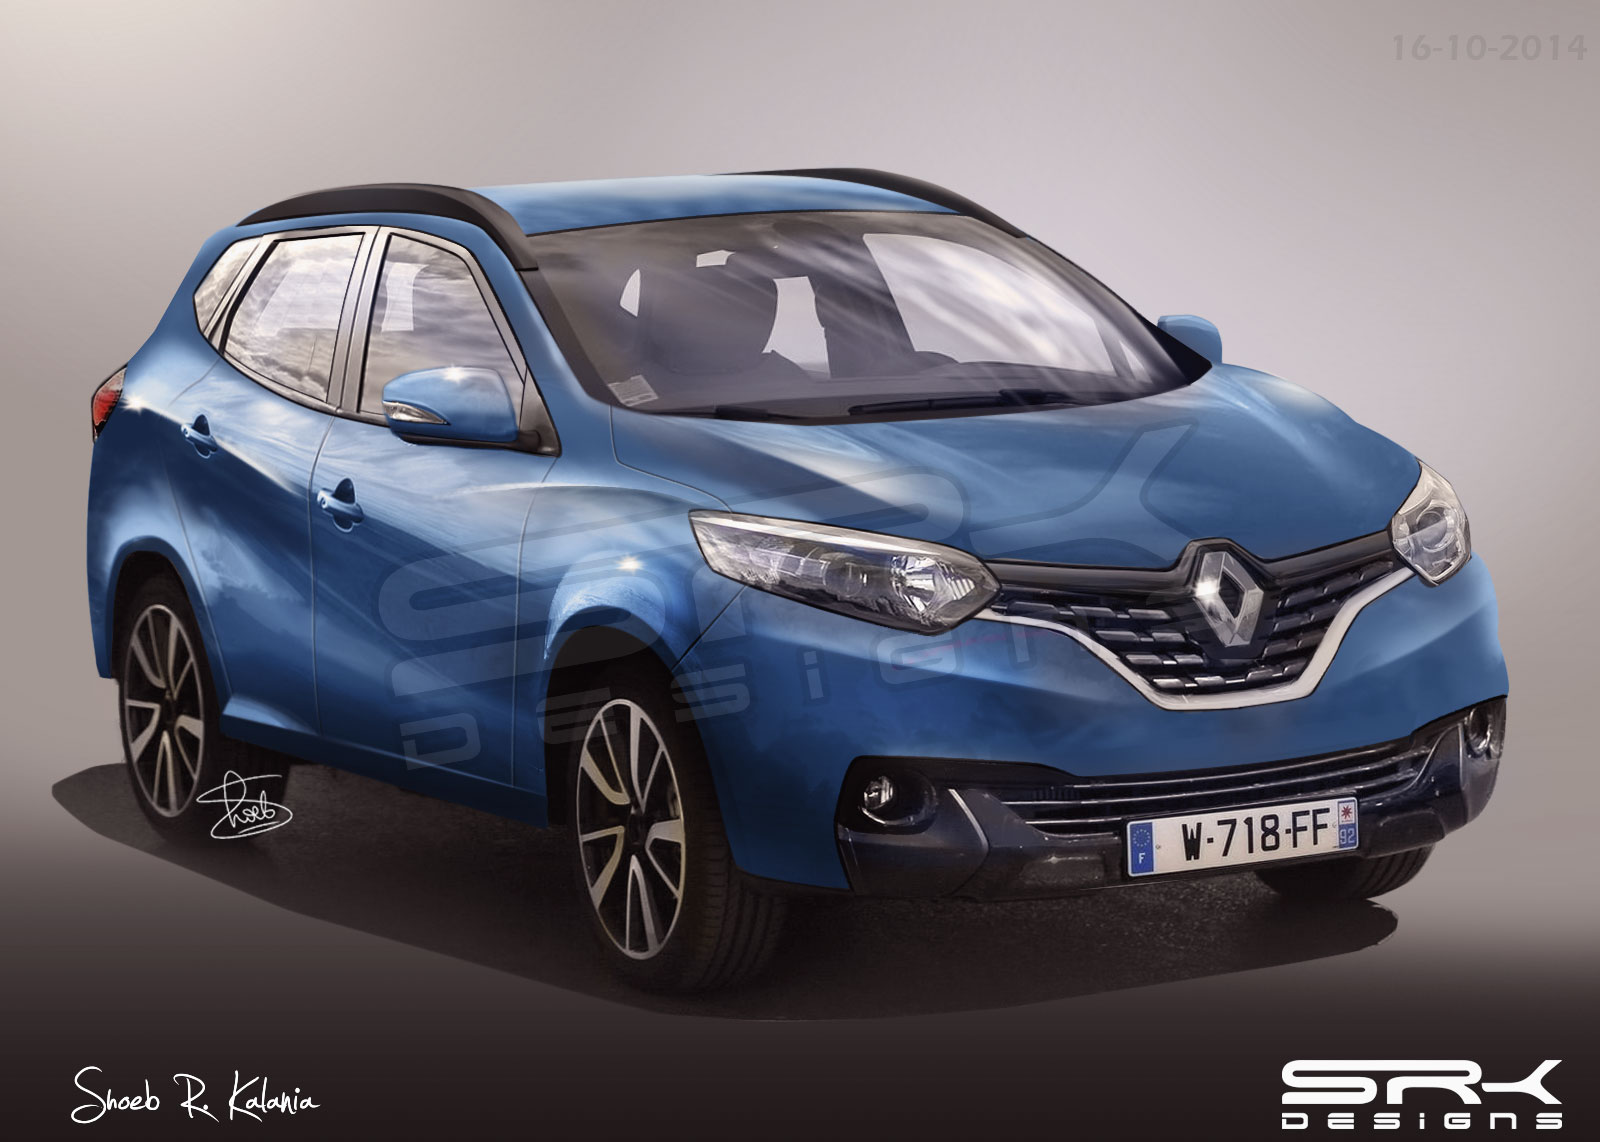 2015 Renault Kadjar Compact Crossover to Debut on February 2 - autoevolution